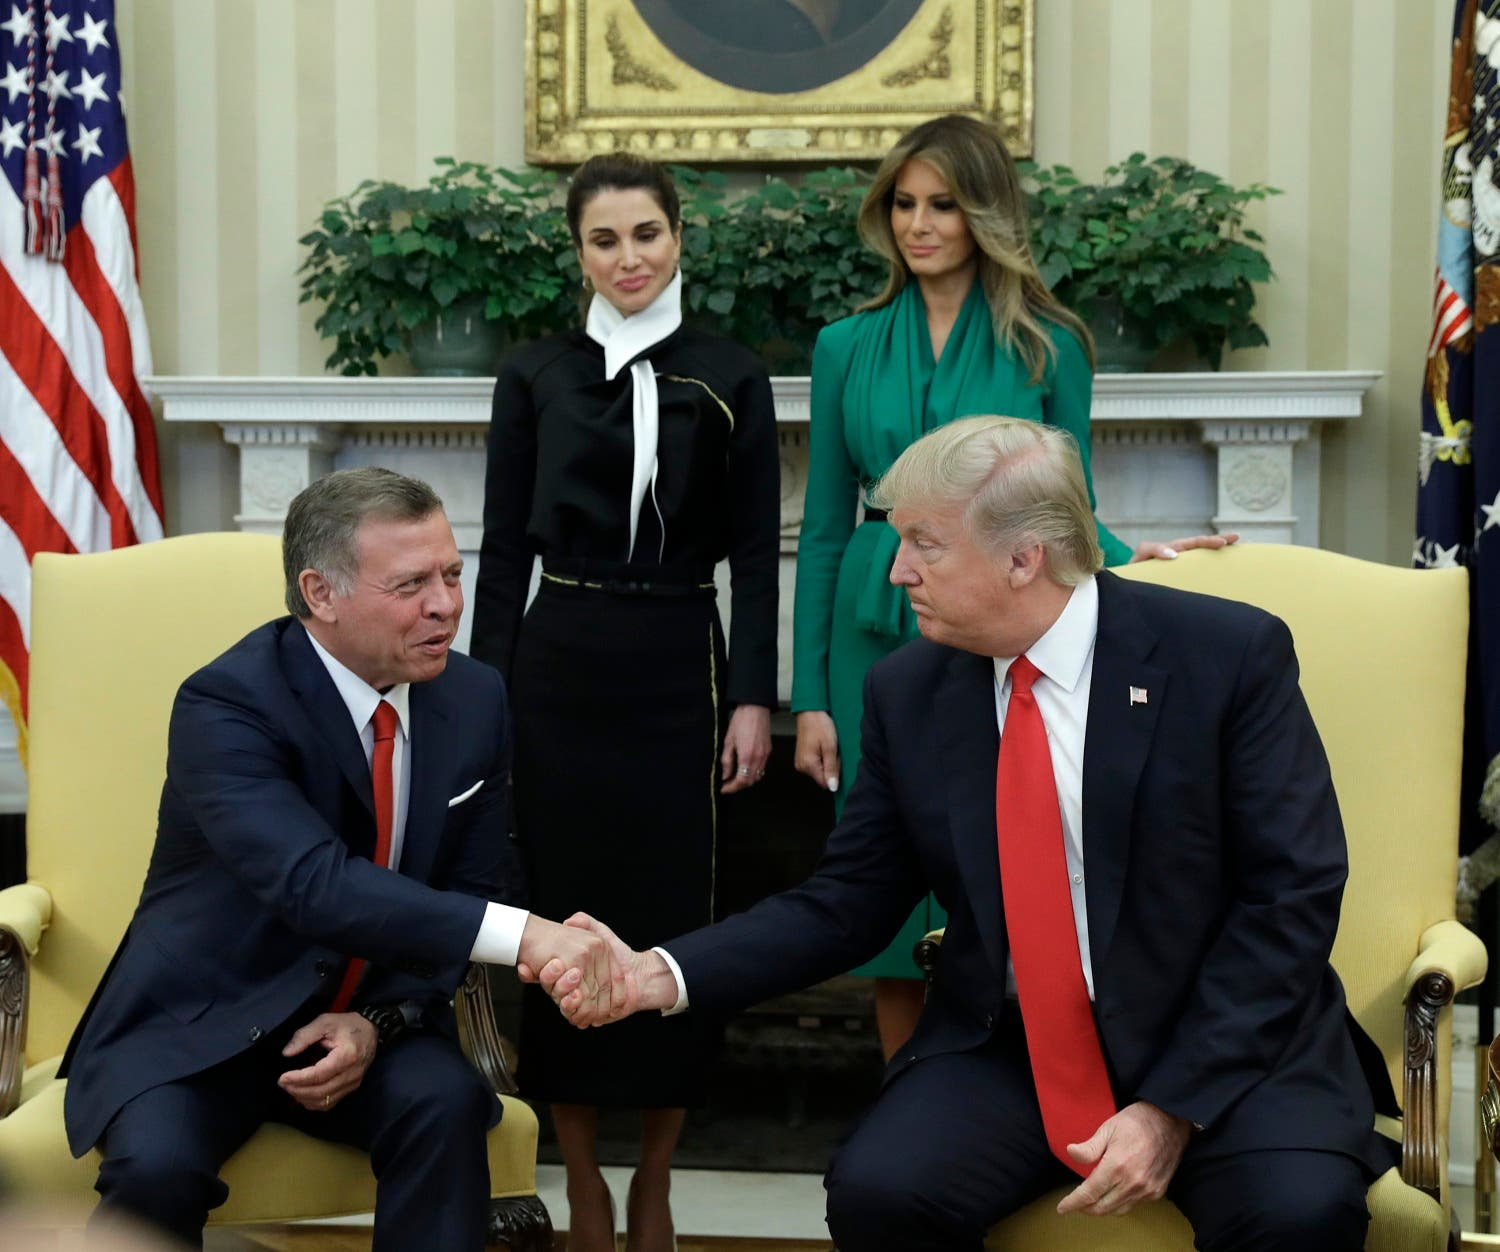 President Donald Trump, accompanied by first lady Melania Trump and Queen Rania, shakes hands with Jordan's King Abdullah II in the Oval Office of the White House in Washington, Wednesday, April, 5, 2017. (AP)